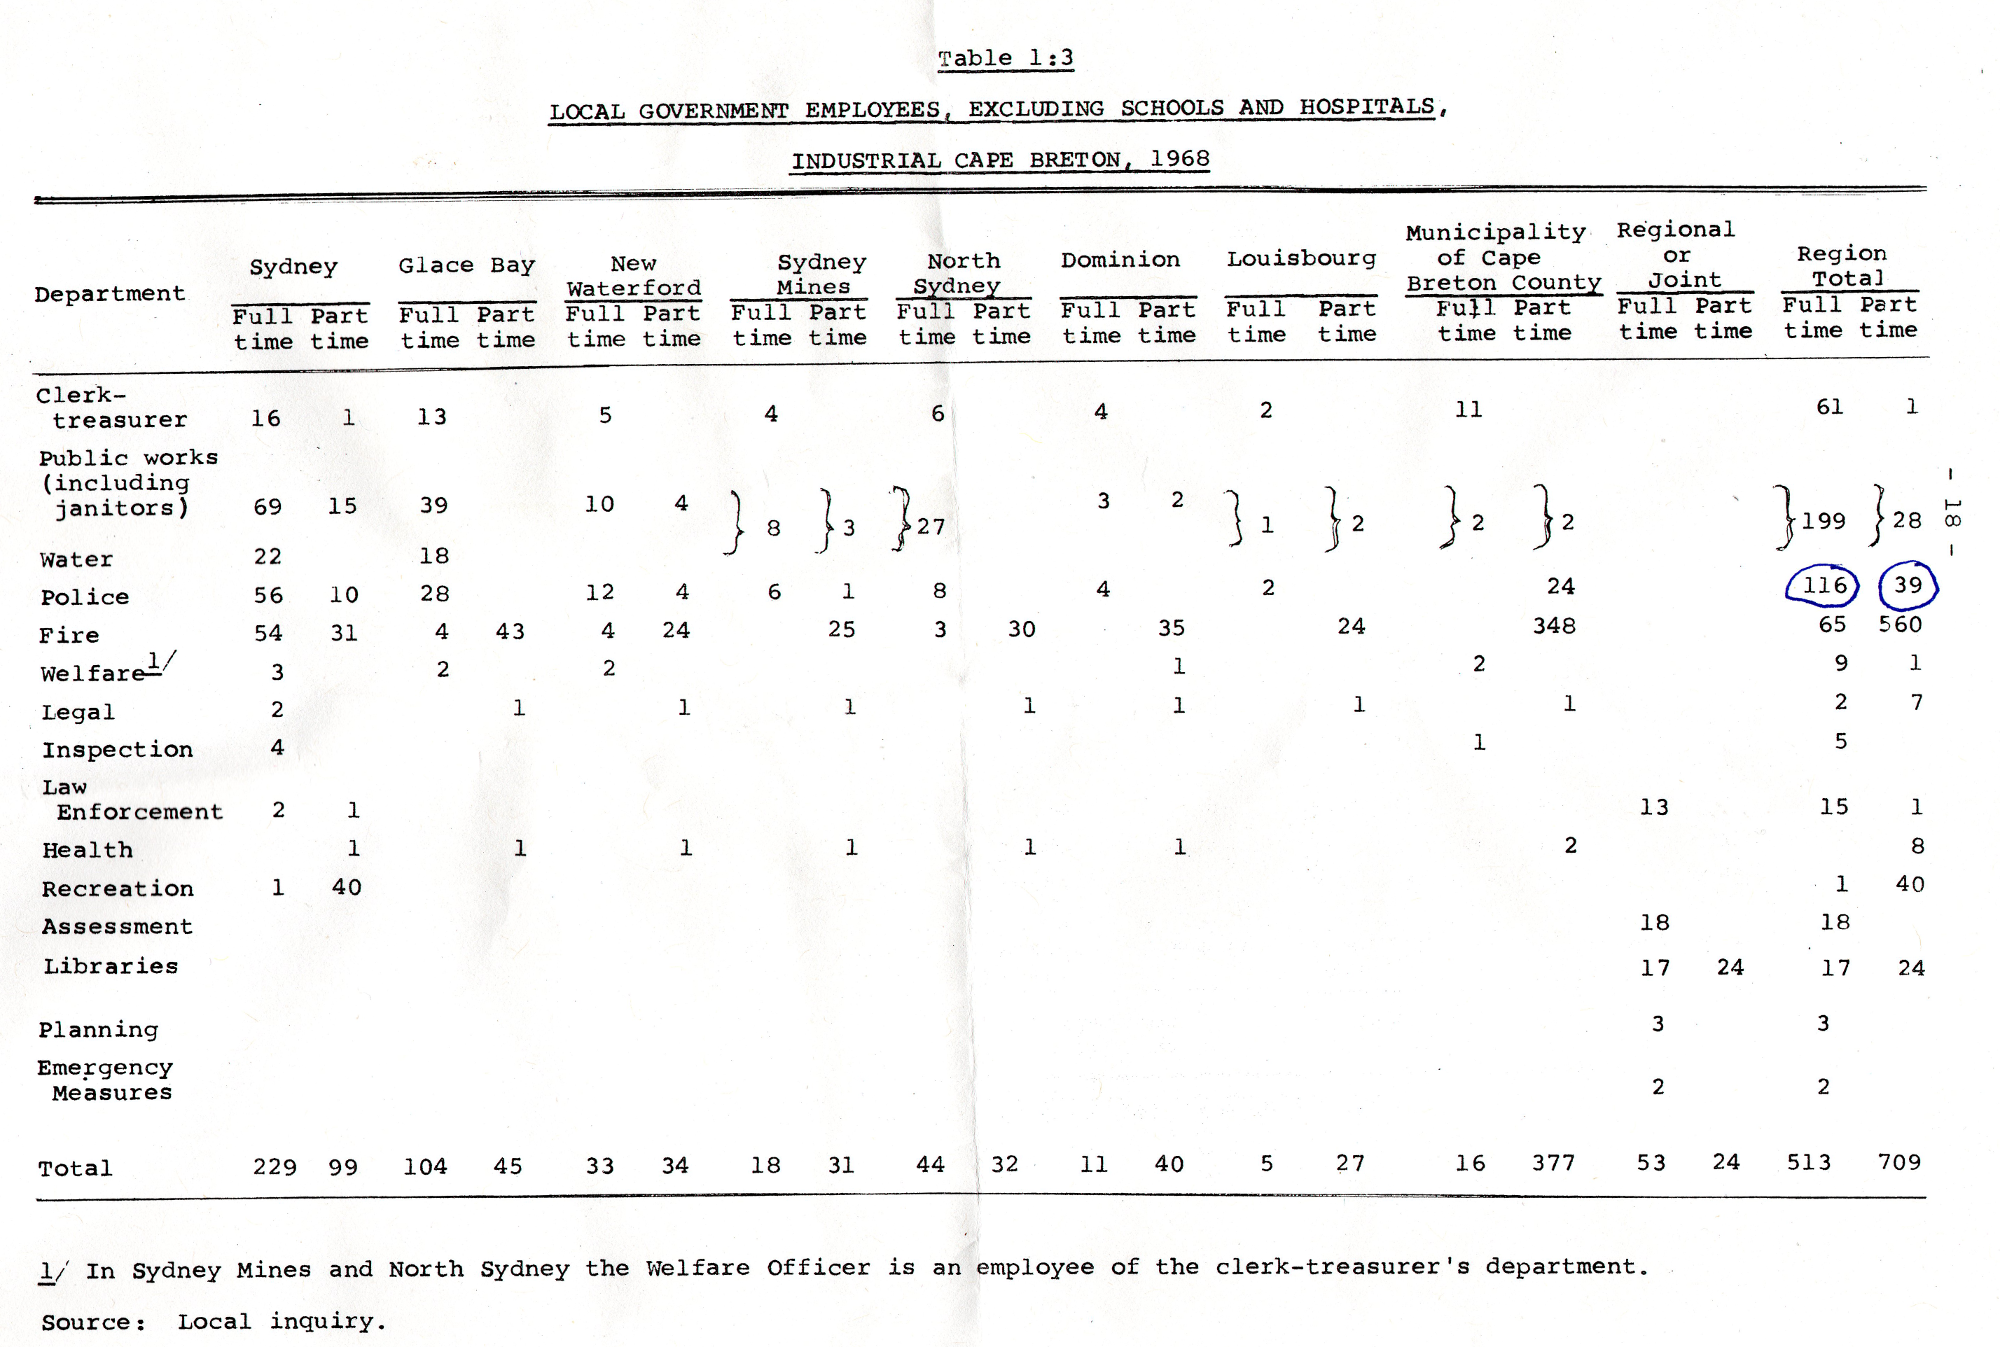 Chart, Municipal employees, Industrial Cape Breton, 1968 (Source: Finnis Report)